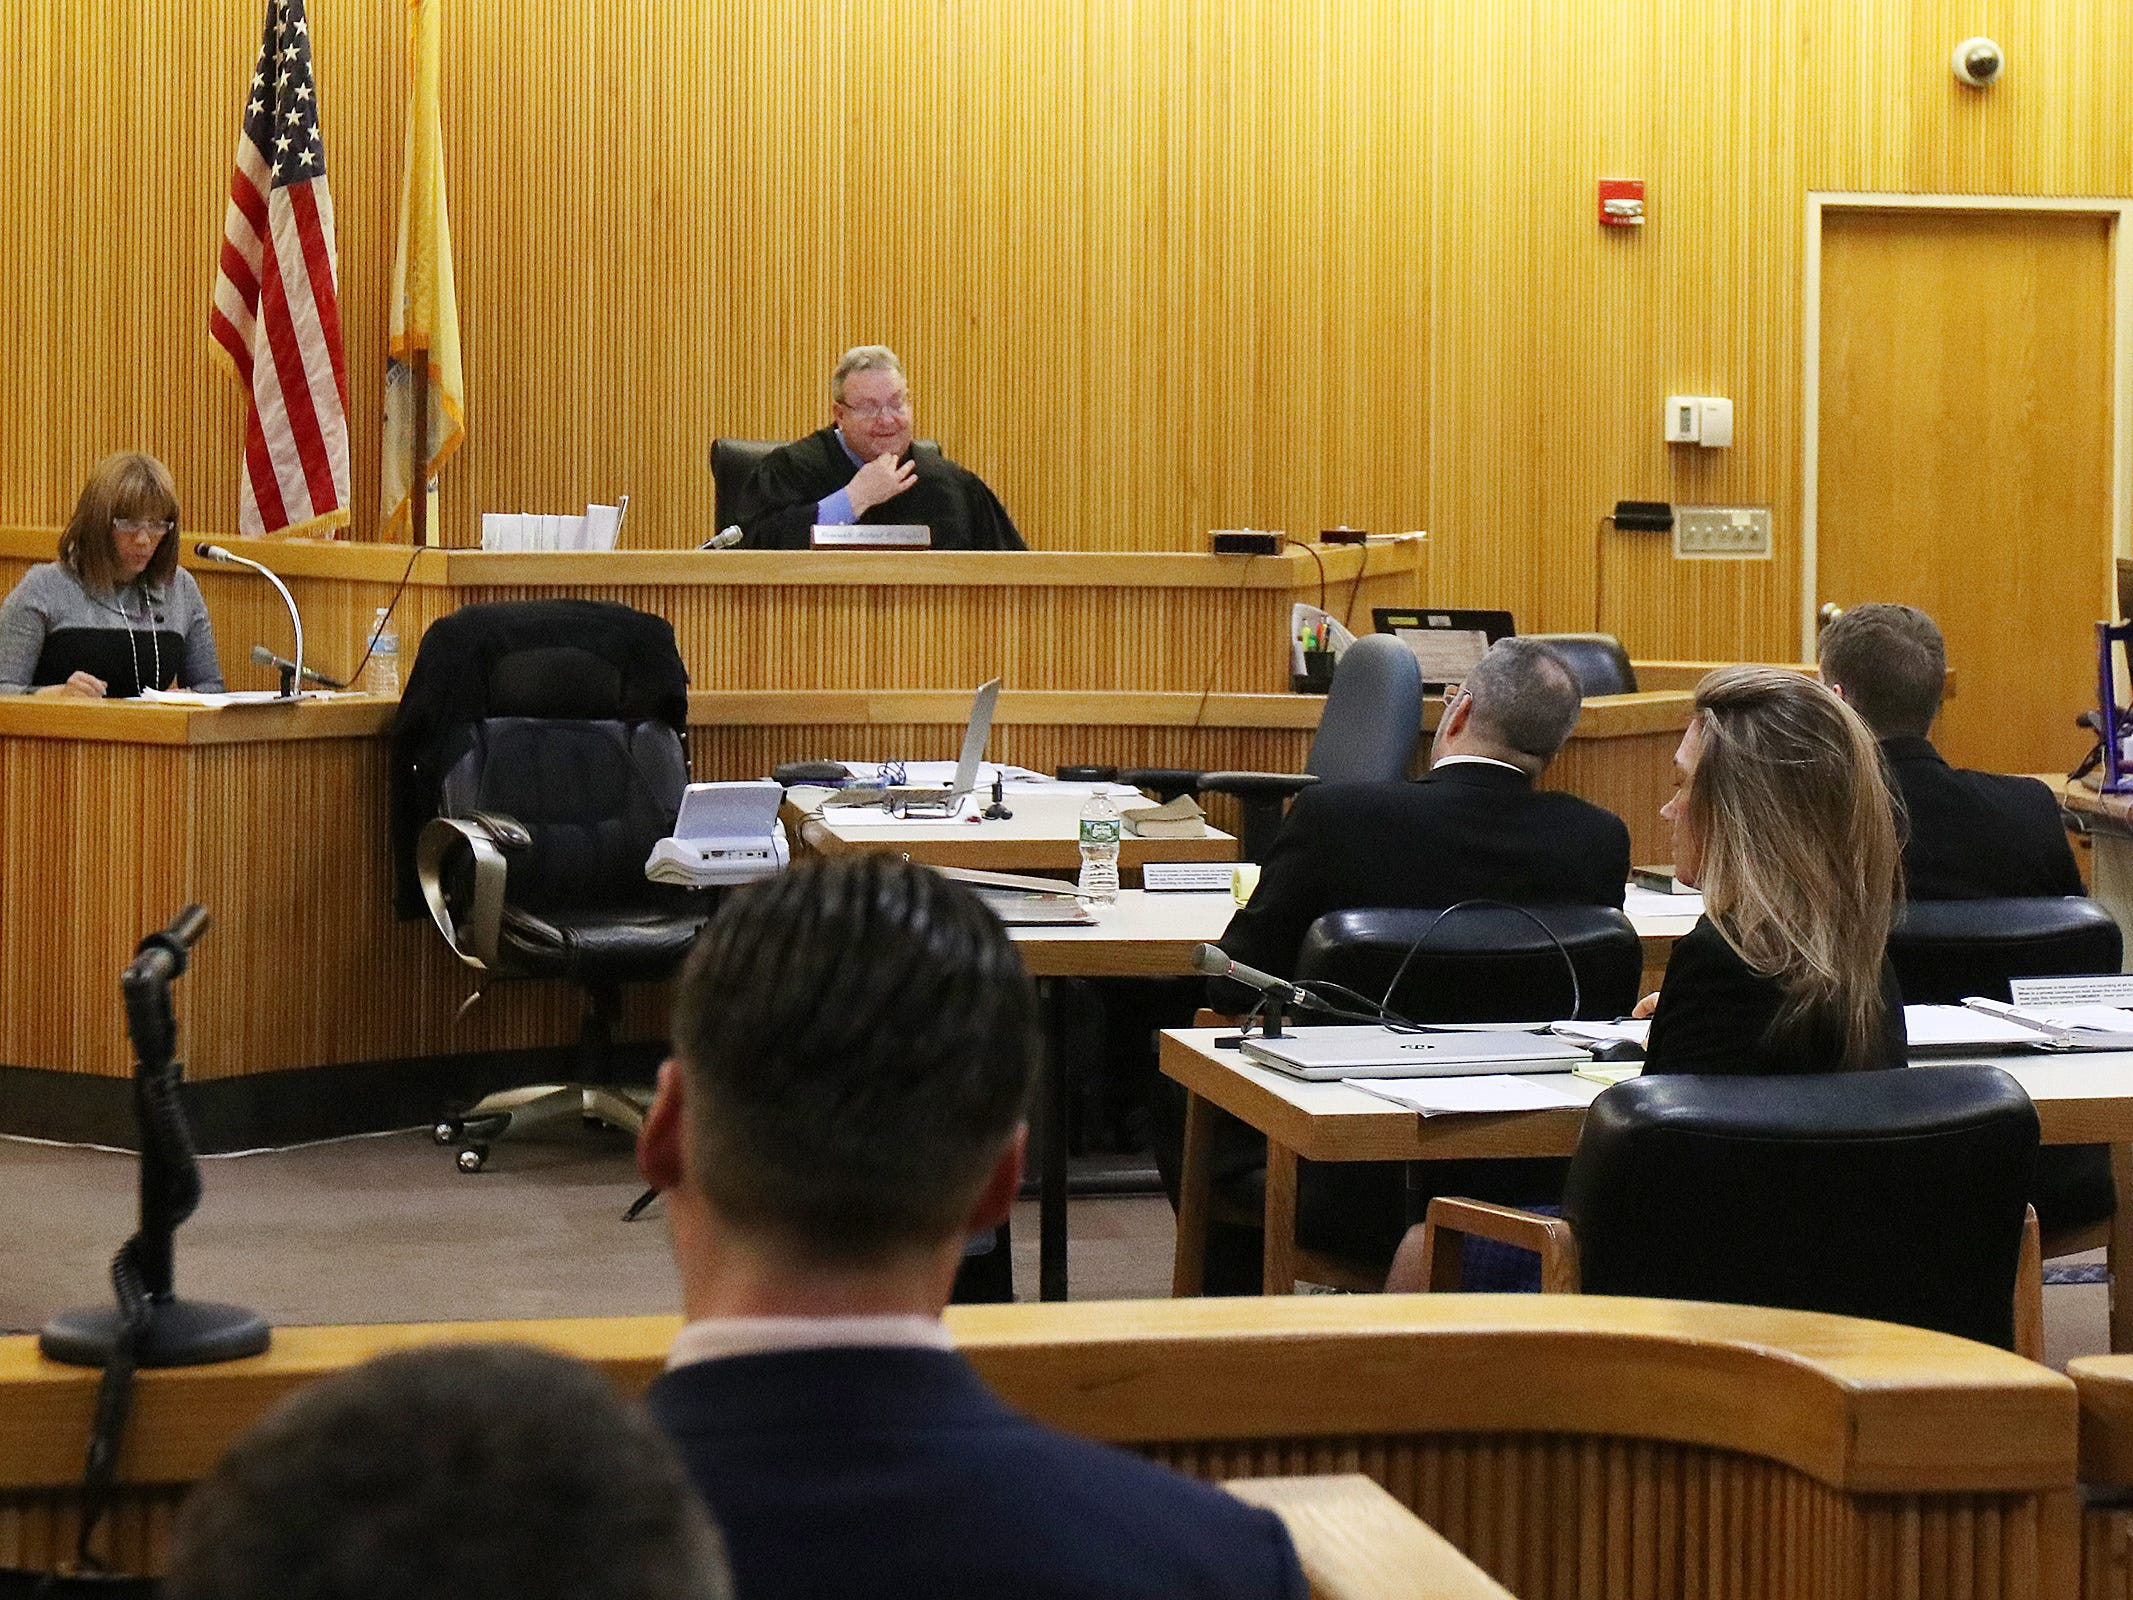 The court reporter reads back some of the testimony of Preston Taylor requested by the jury during their deliberations in the trial of Liam McAtasney, who is charged with the murder of former high school classmate, Sarah Stern, before Superior Court Judge Richard W. English at the Monmouth County Courthouse in Freehold, NJ Tuesday, February 26, 2019.